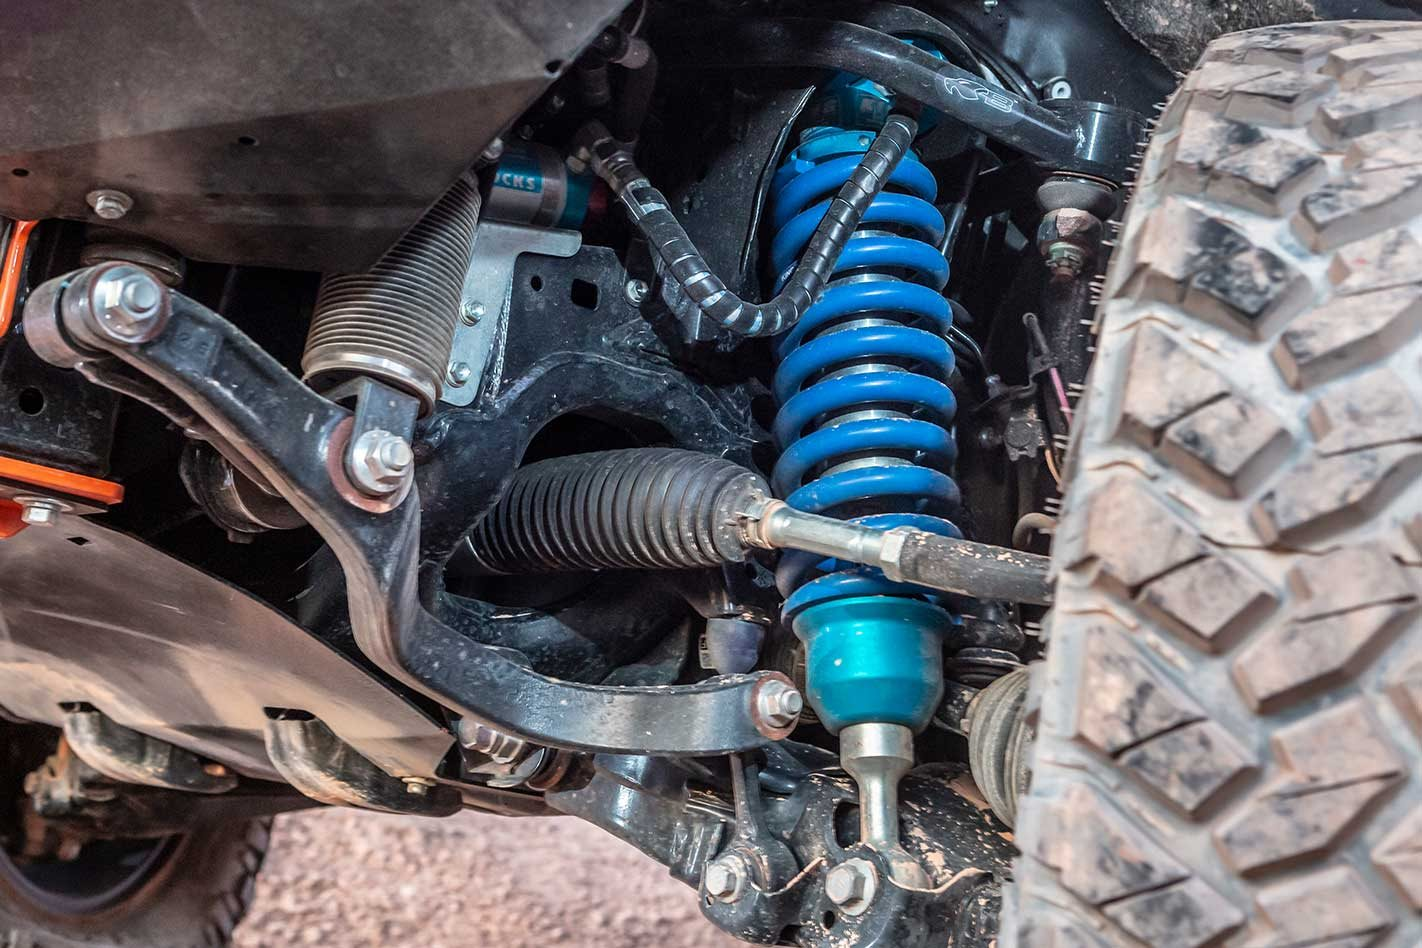 4x4 suspension is equally as important on-road as off-road